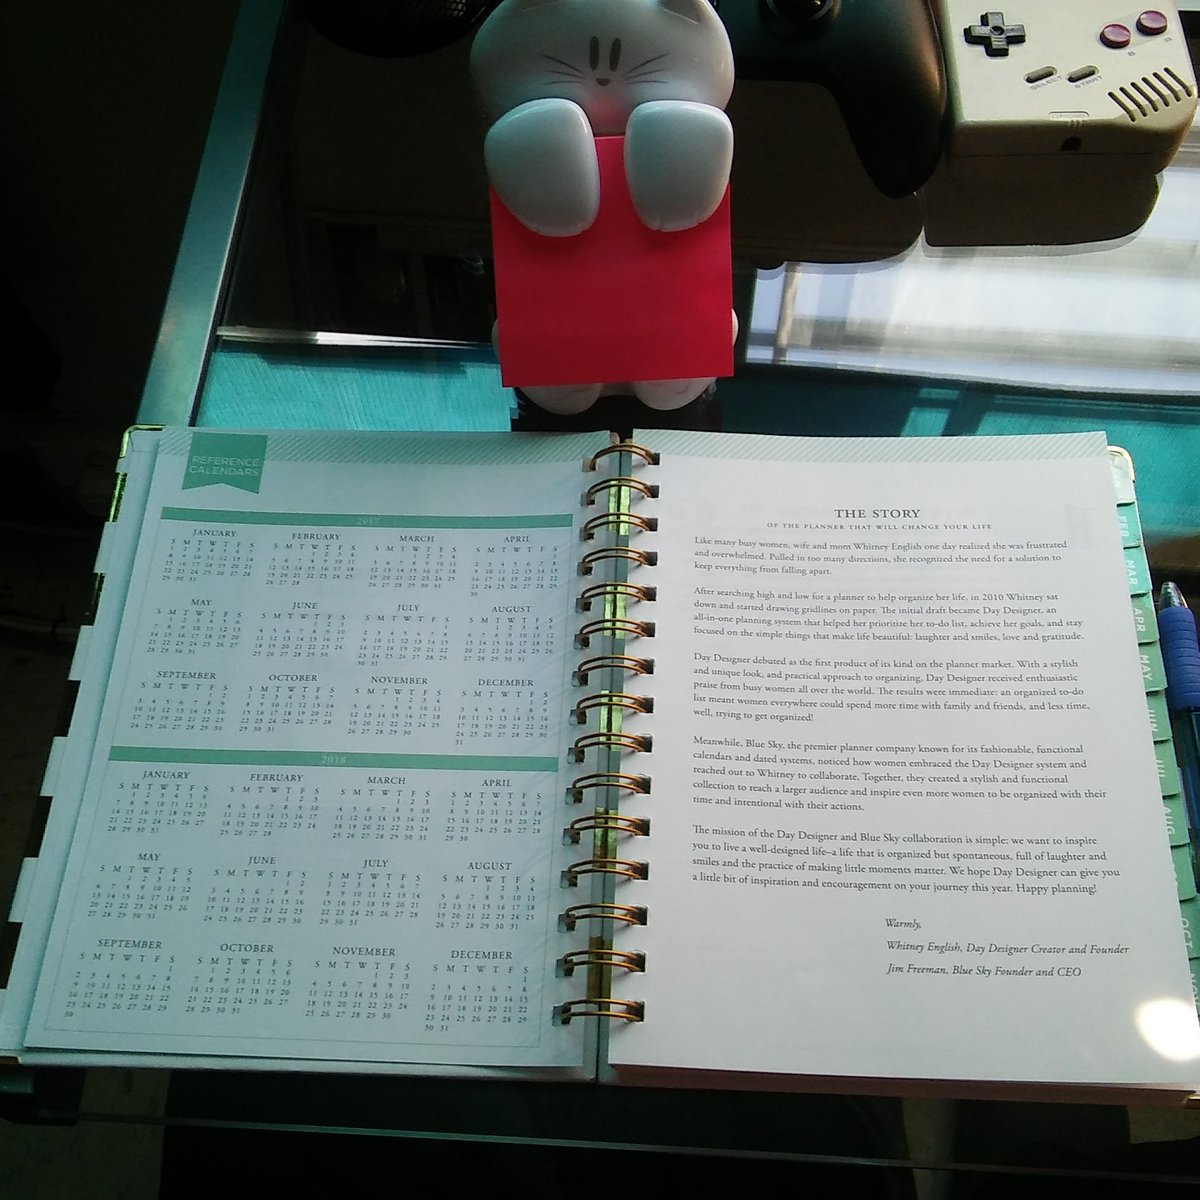 Gotta stay focused and #organized. #planner life #TeamEmmmmsie. #SupportSmallStreamers. Gotta grind :) <br>http://pic.twitter.com/na5GIpQQqb